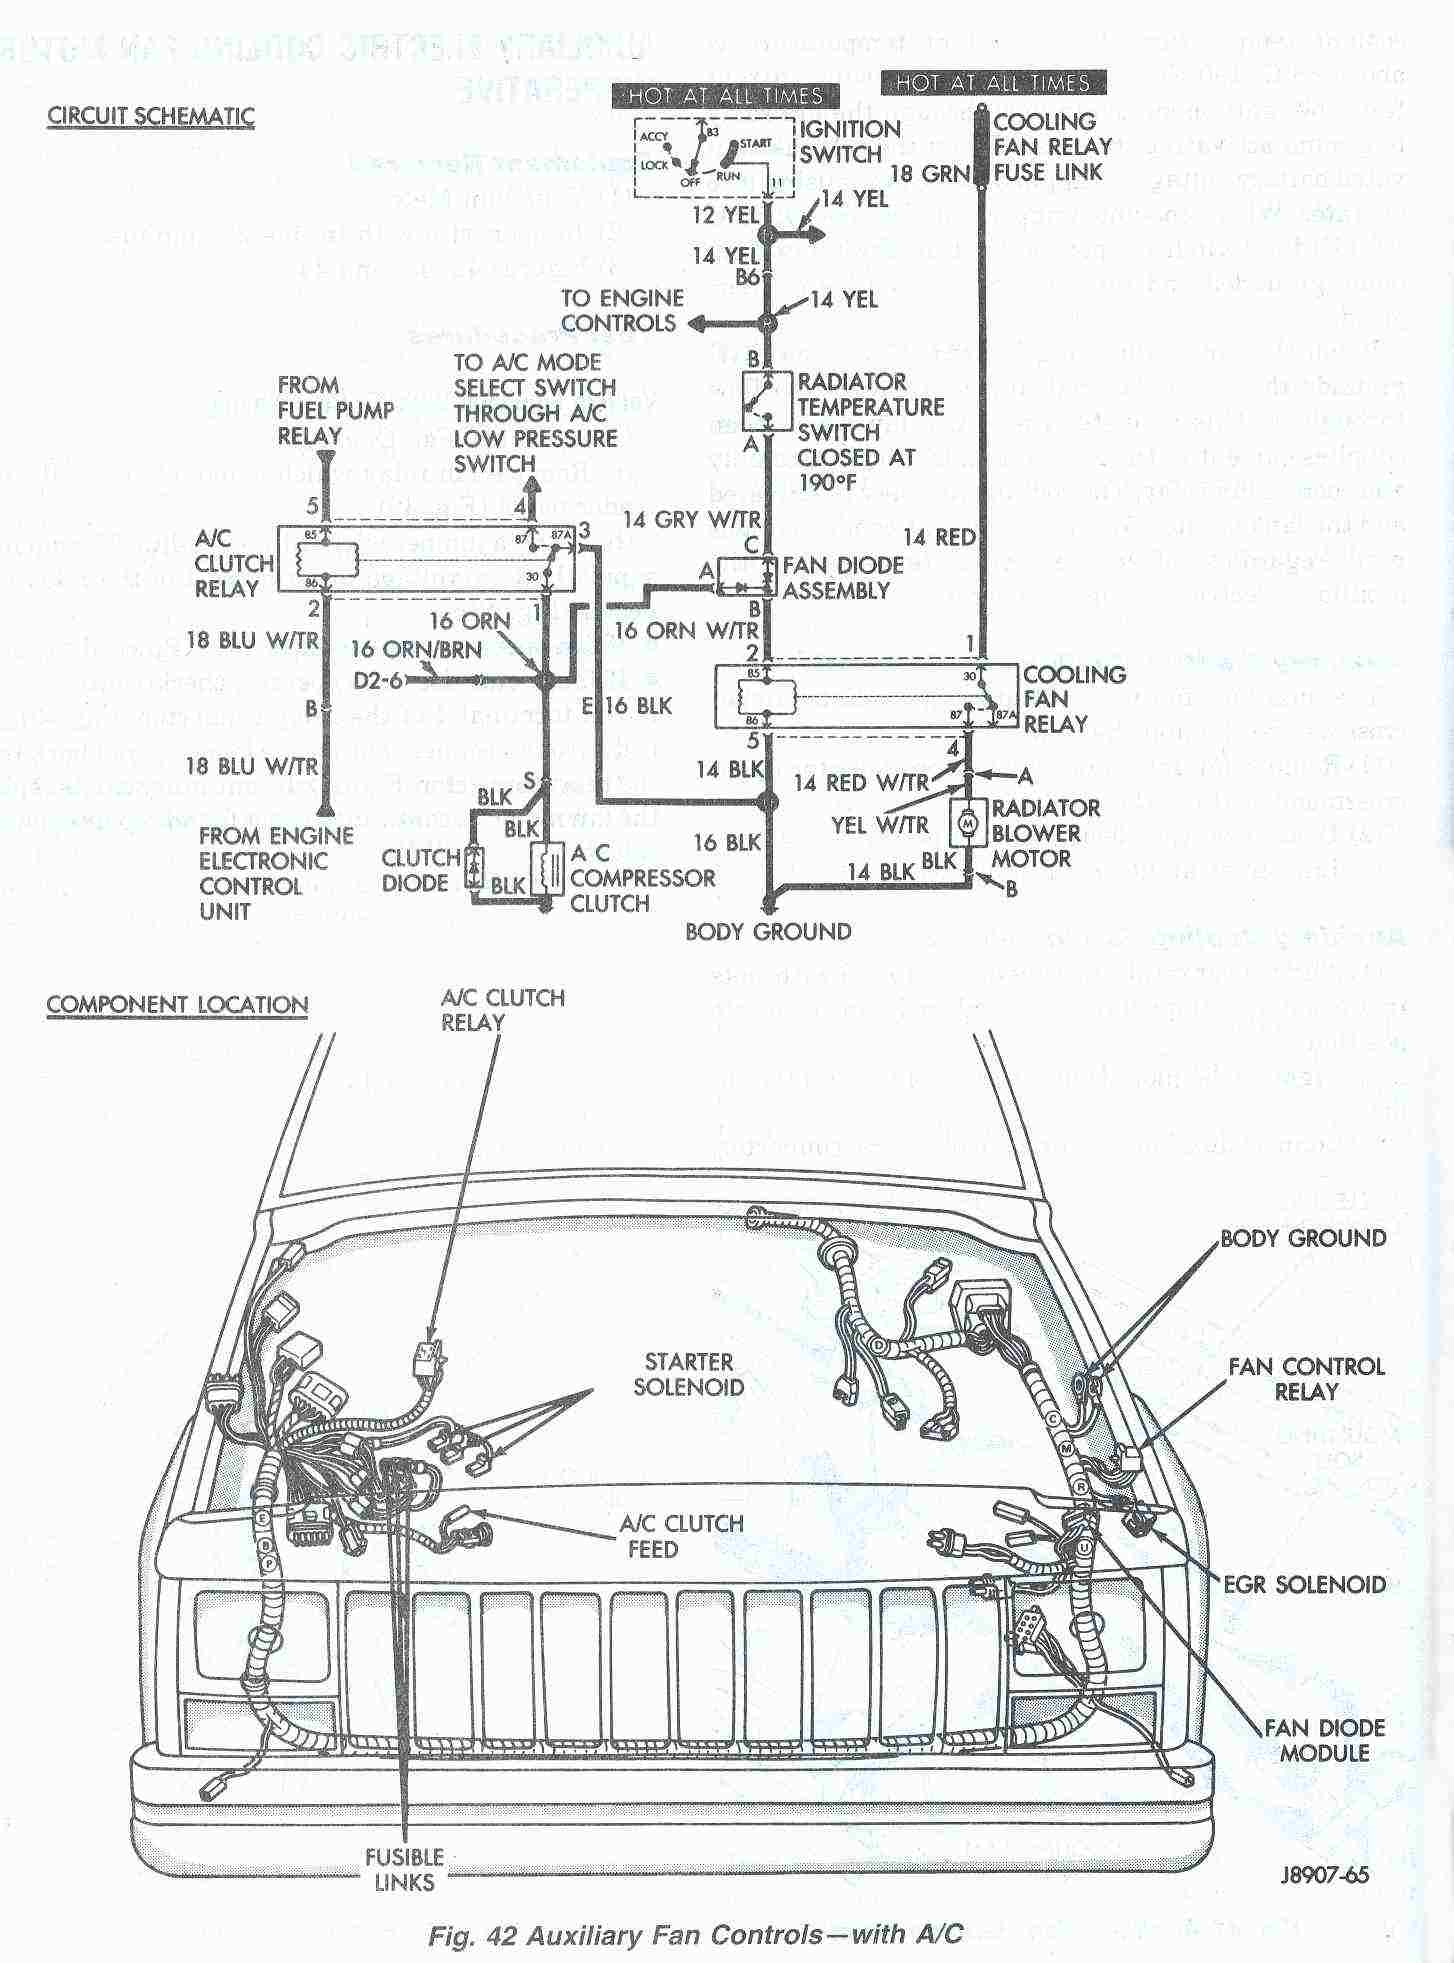 1991 jeep wiring diagram jeep cherokee cooling system electric cooling fan 43 and body ground connections on the fender panel